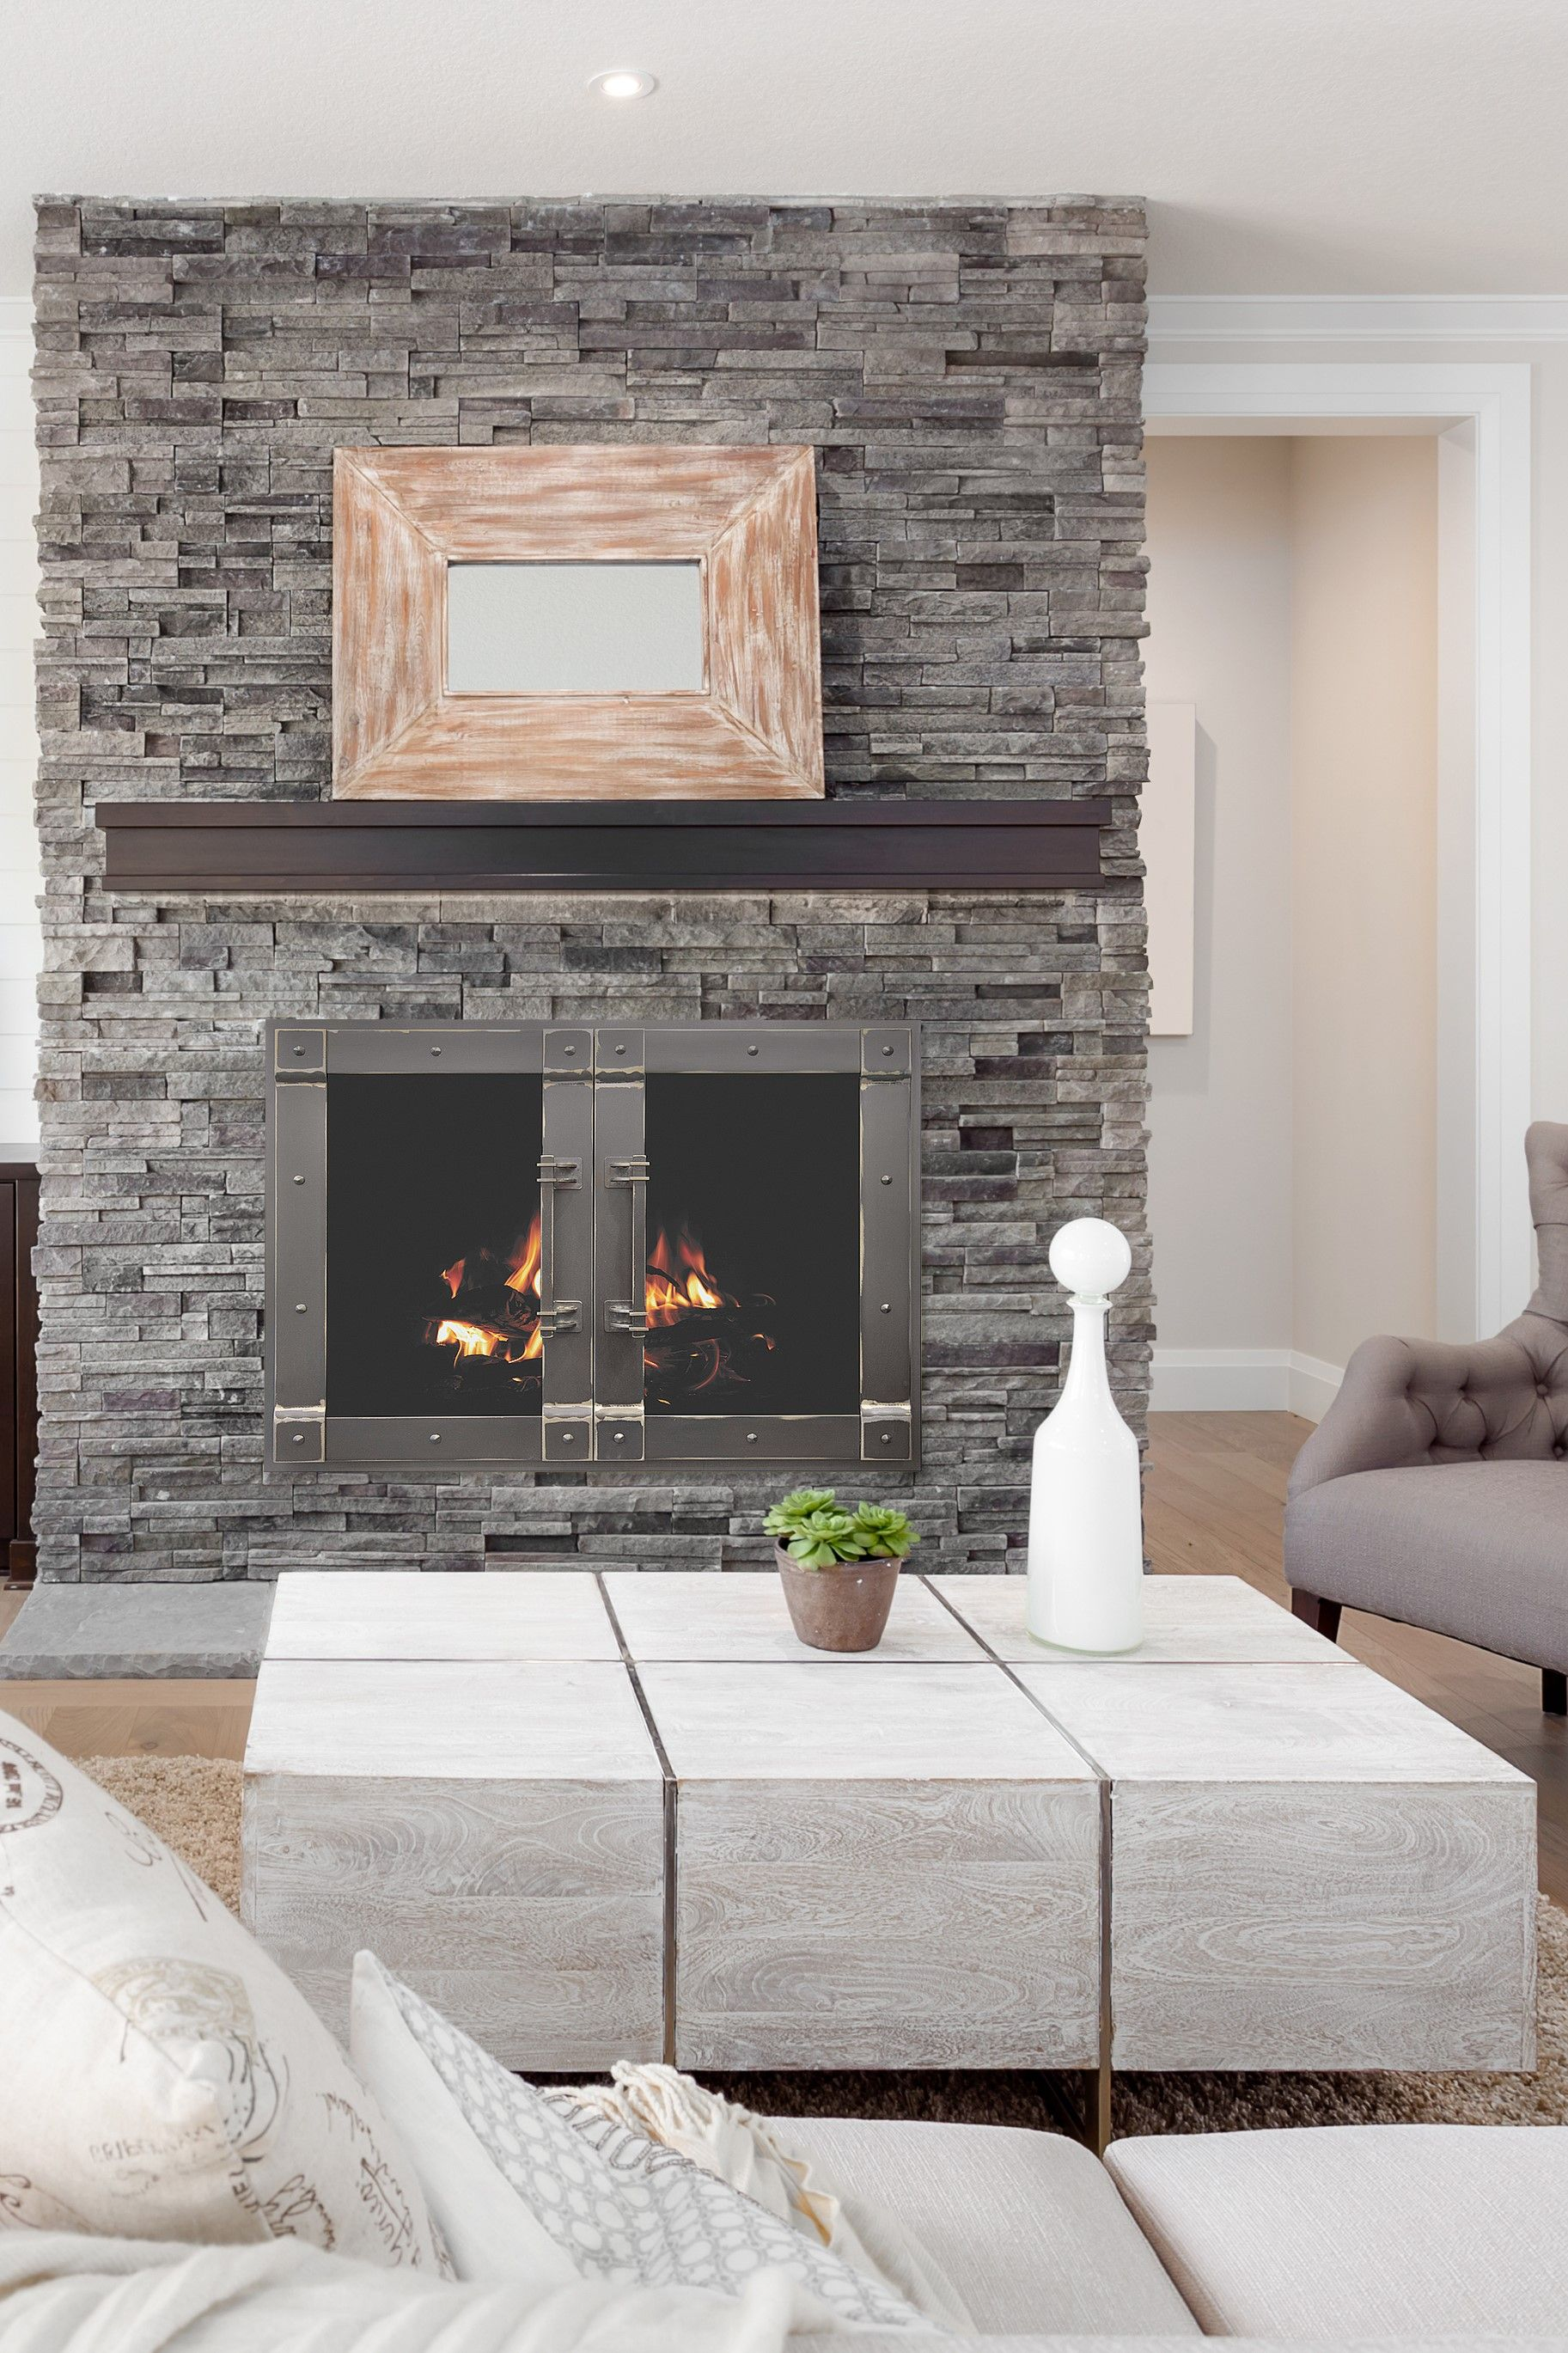 Adding Fireplace Doors Is A Large Part Of Transforming Your Fireplace Setting Our Hand Crafted Fire Modern Fireplace Cast Stone Fireplace Stone Fireplace Wall